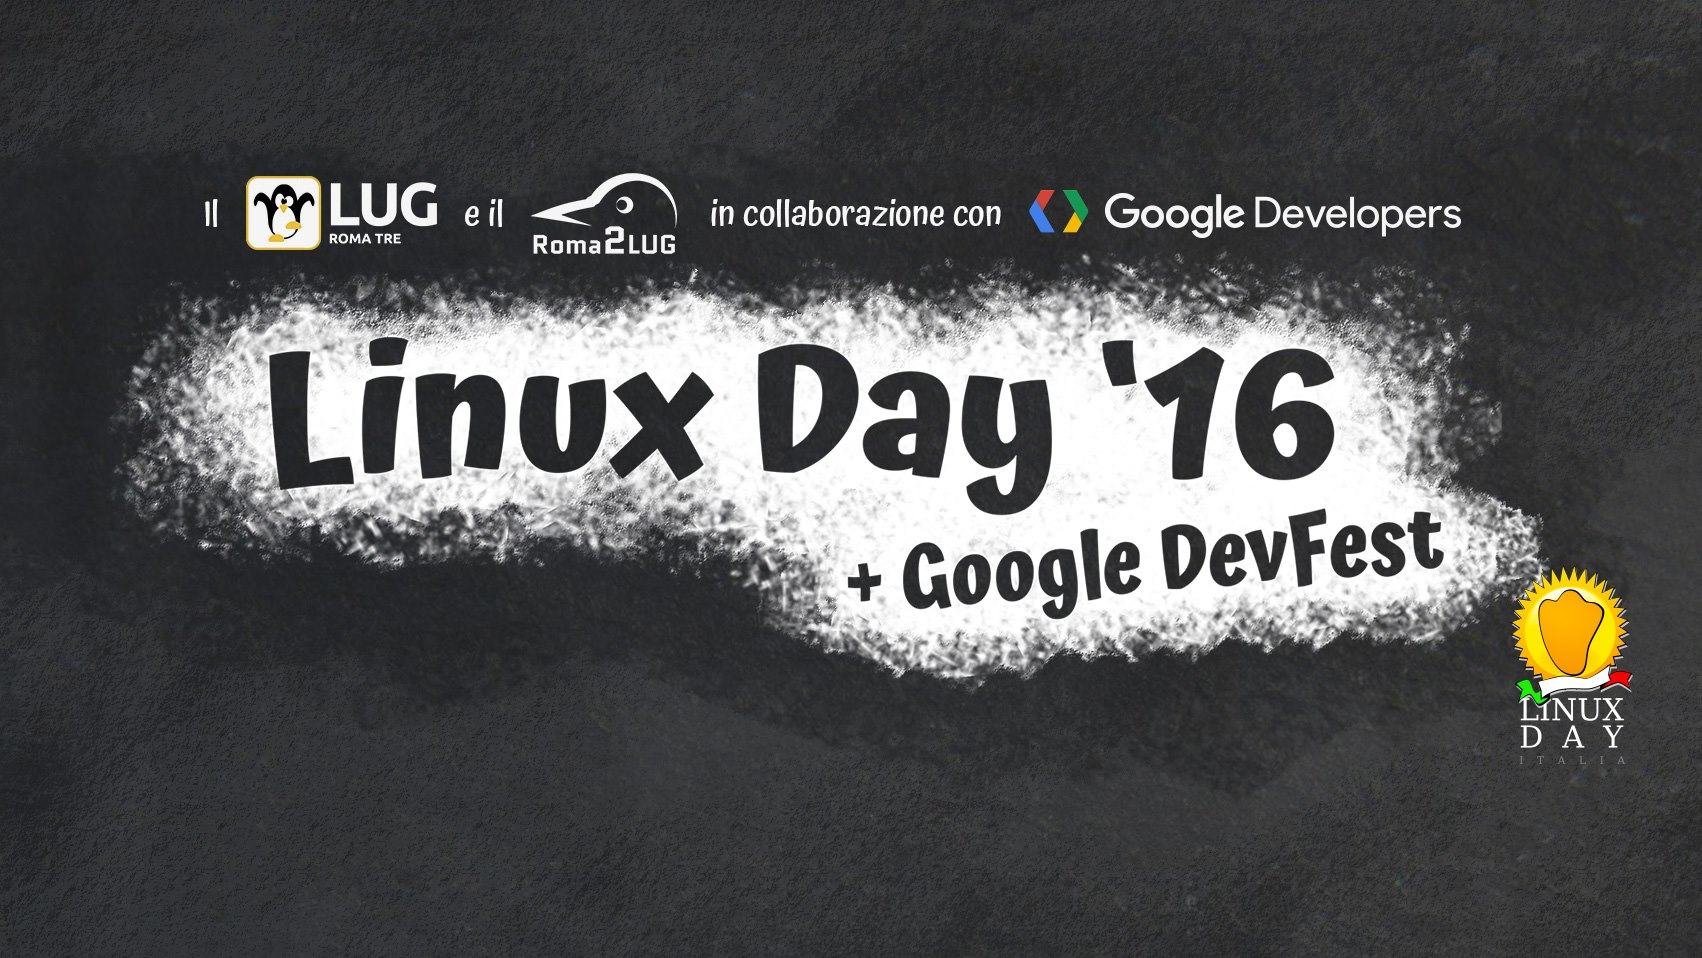 Linux Day 2016